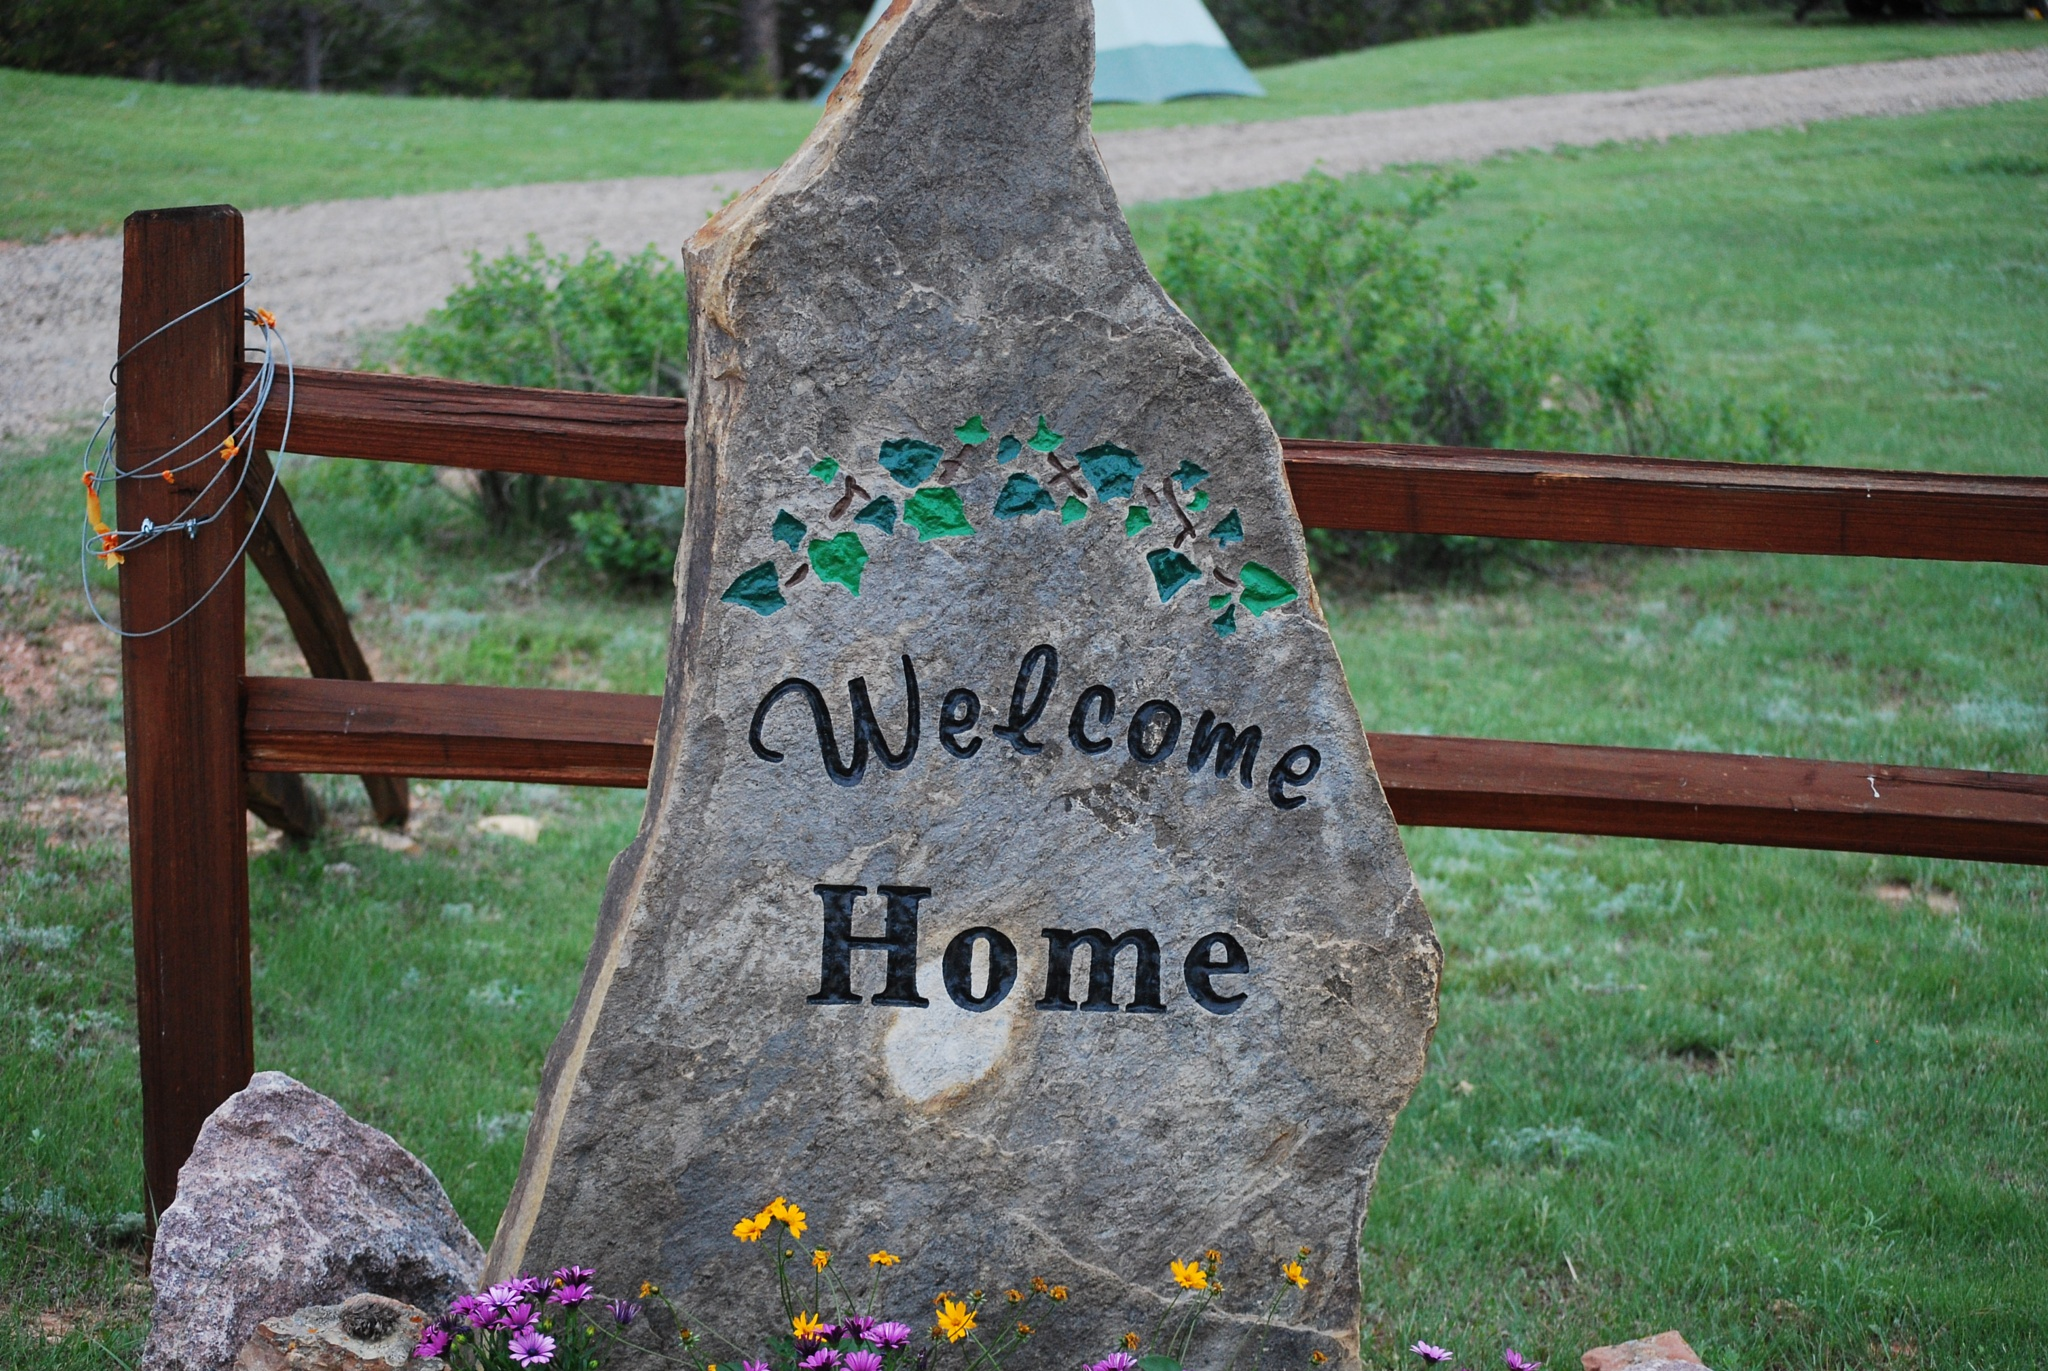 Welcome home by marilyn wirtz